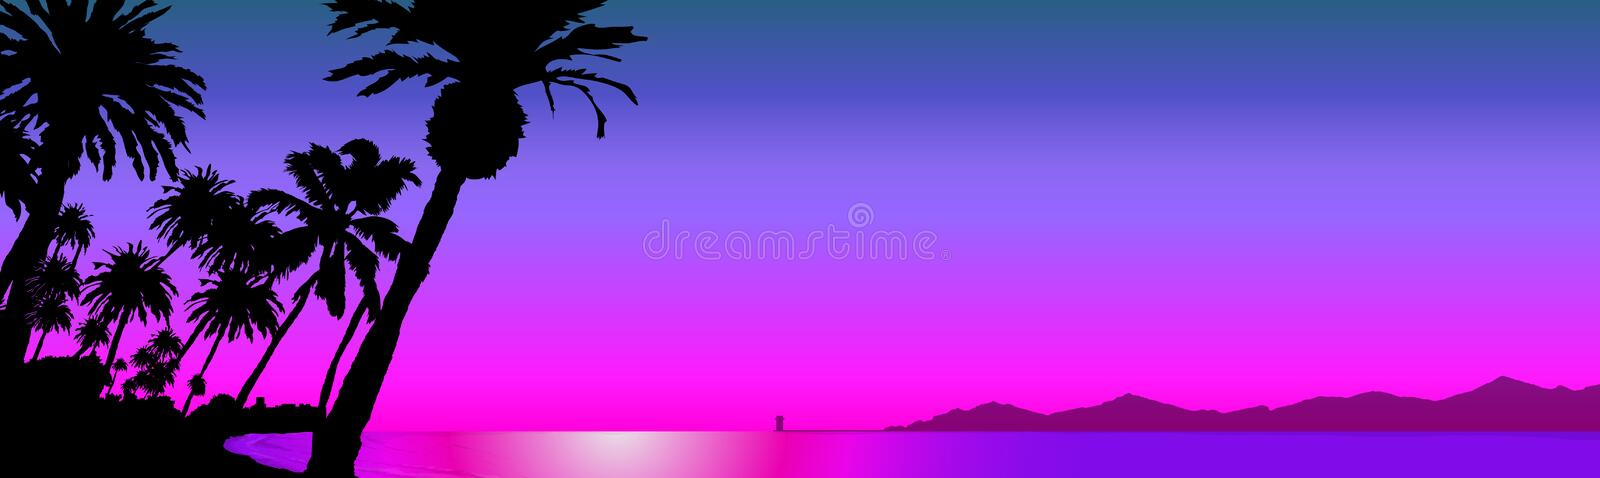 Download Beautiful Beaches Silhouette Stock Illustration - Image: 16326839